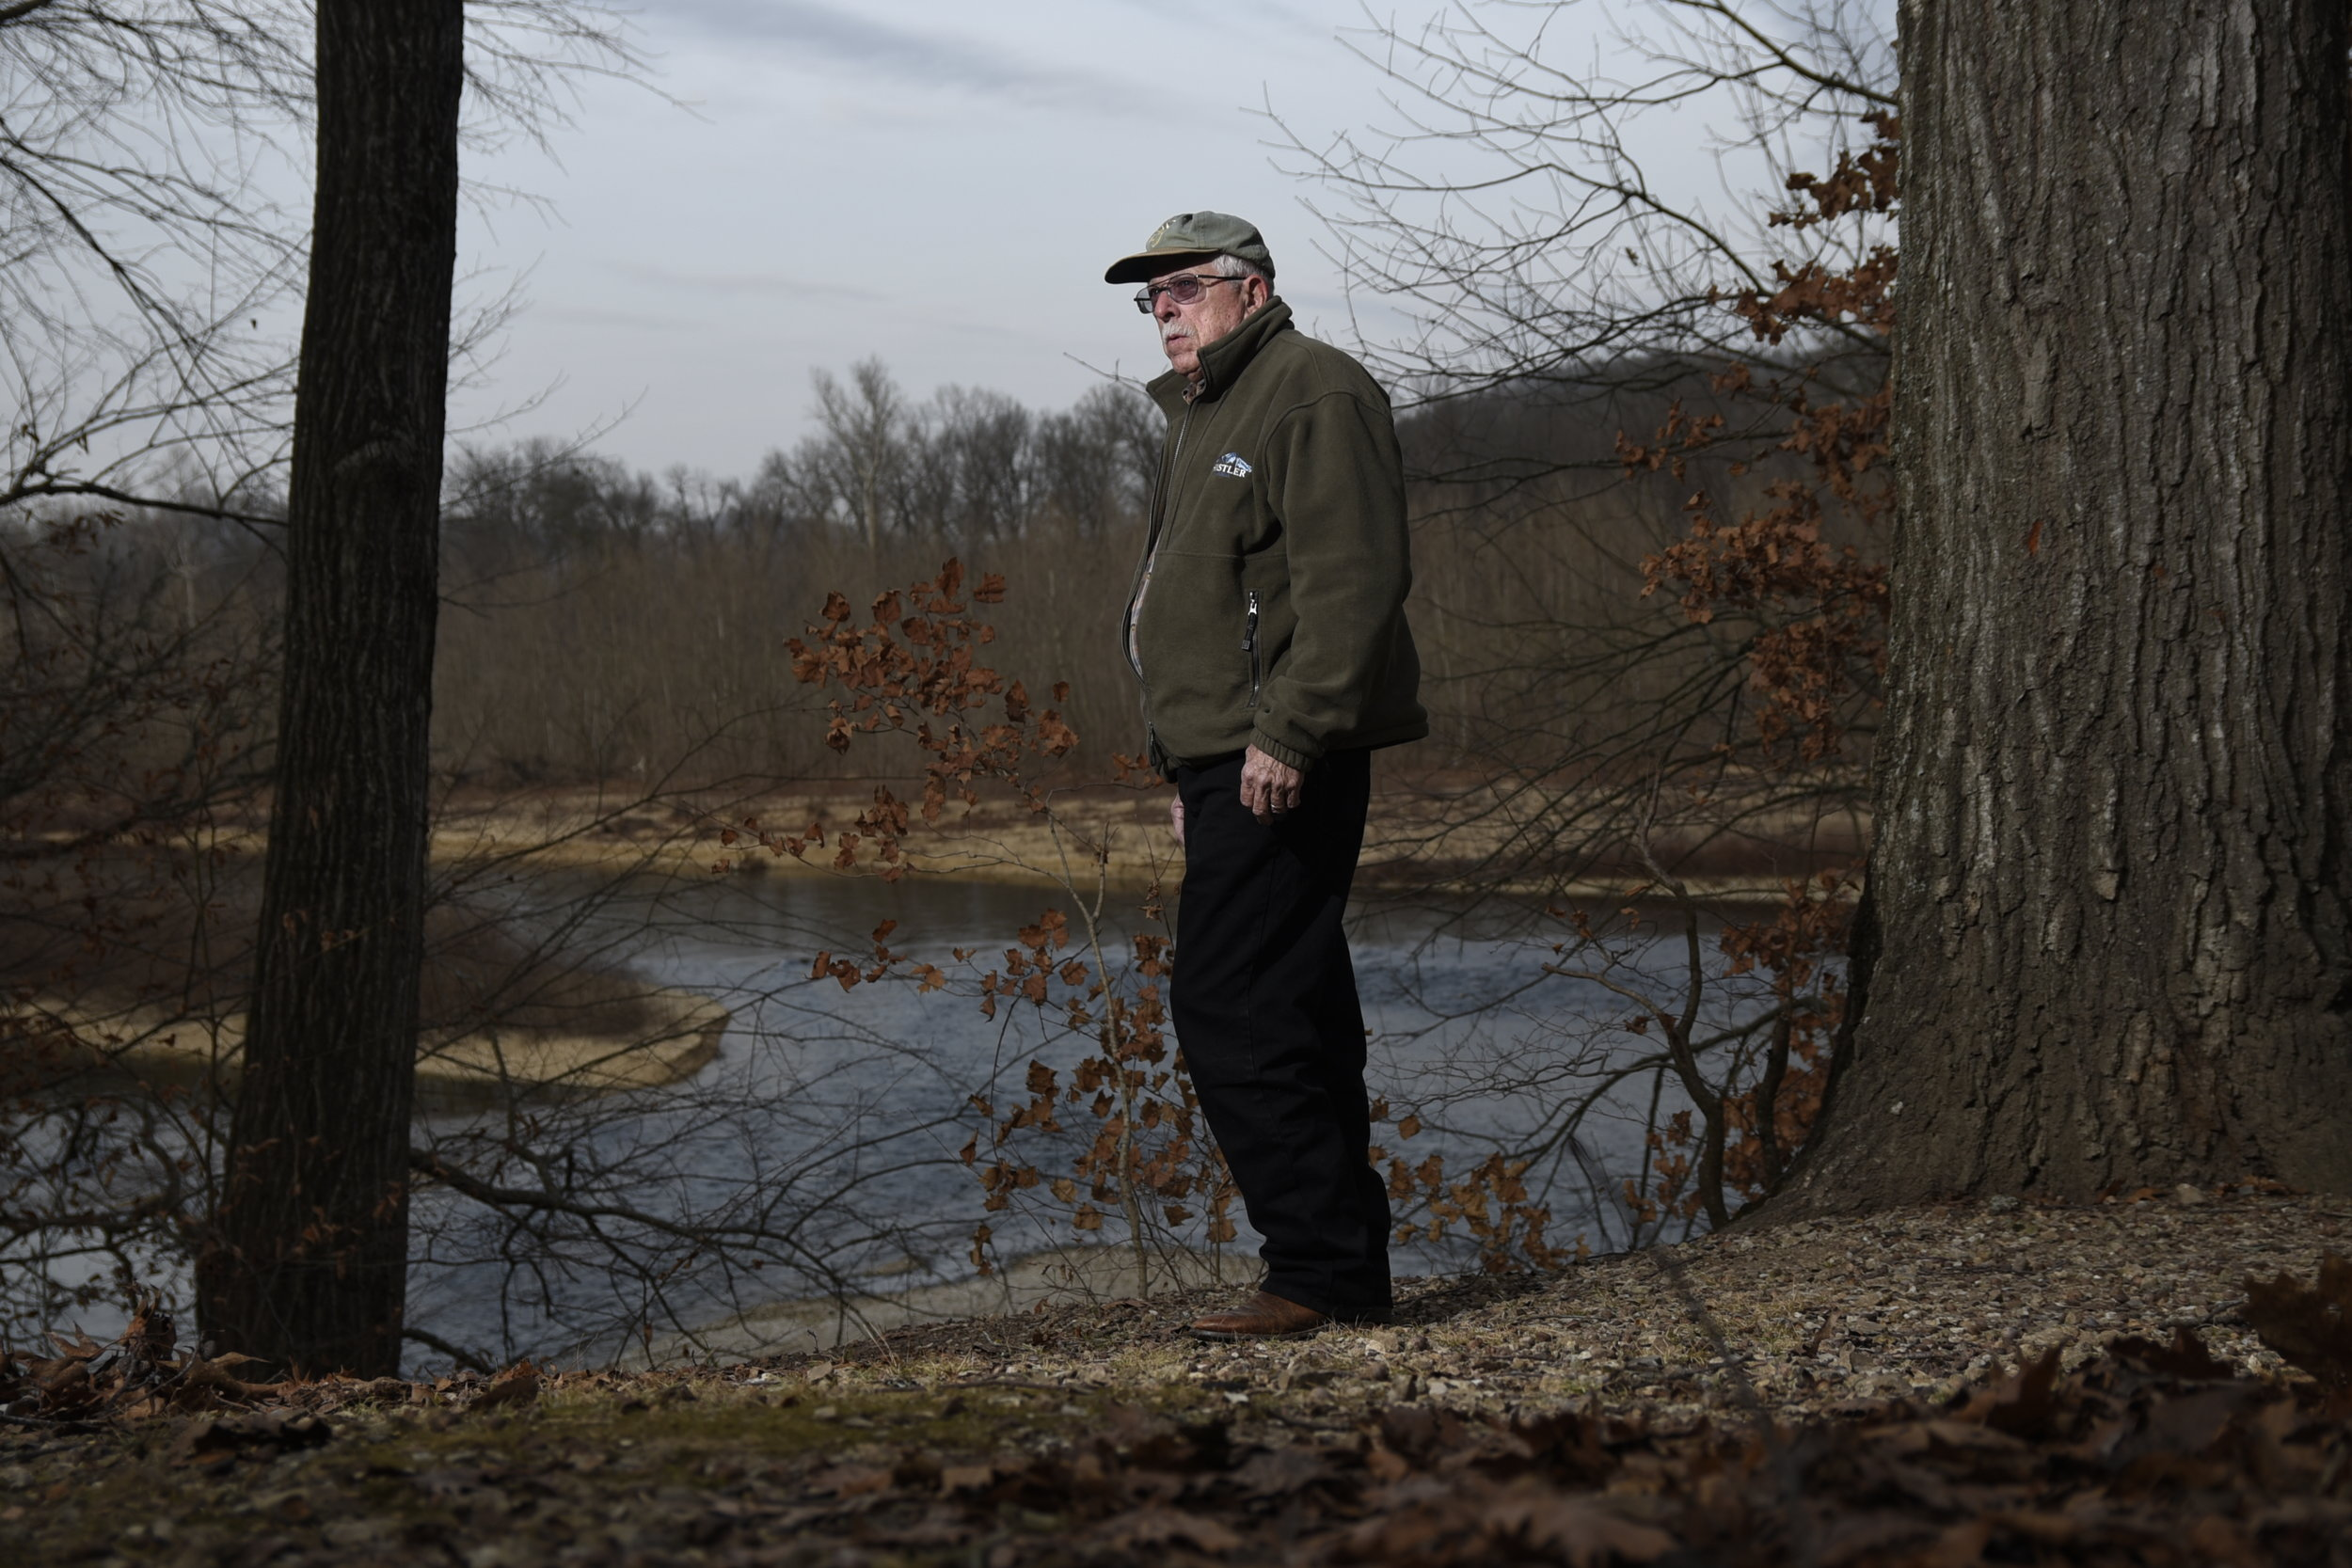 Ed Brocksmith poses along the Illinois River. He is a co-founder of the non-profit organization Save The Illinois River. CREDIT: Nick Oxford for The New York Times